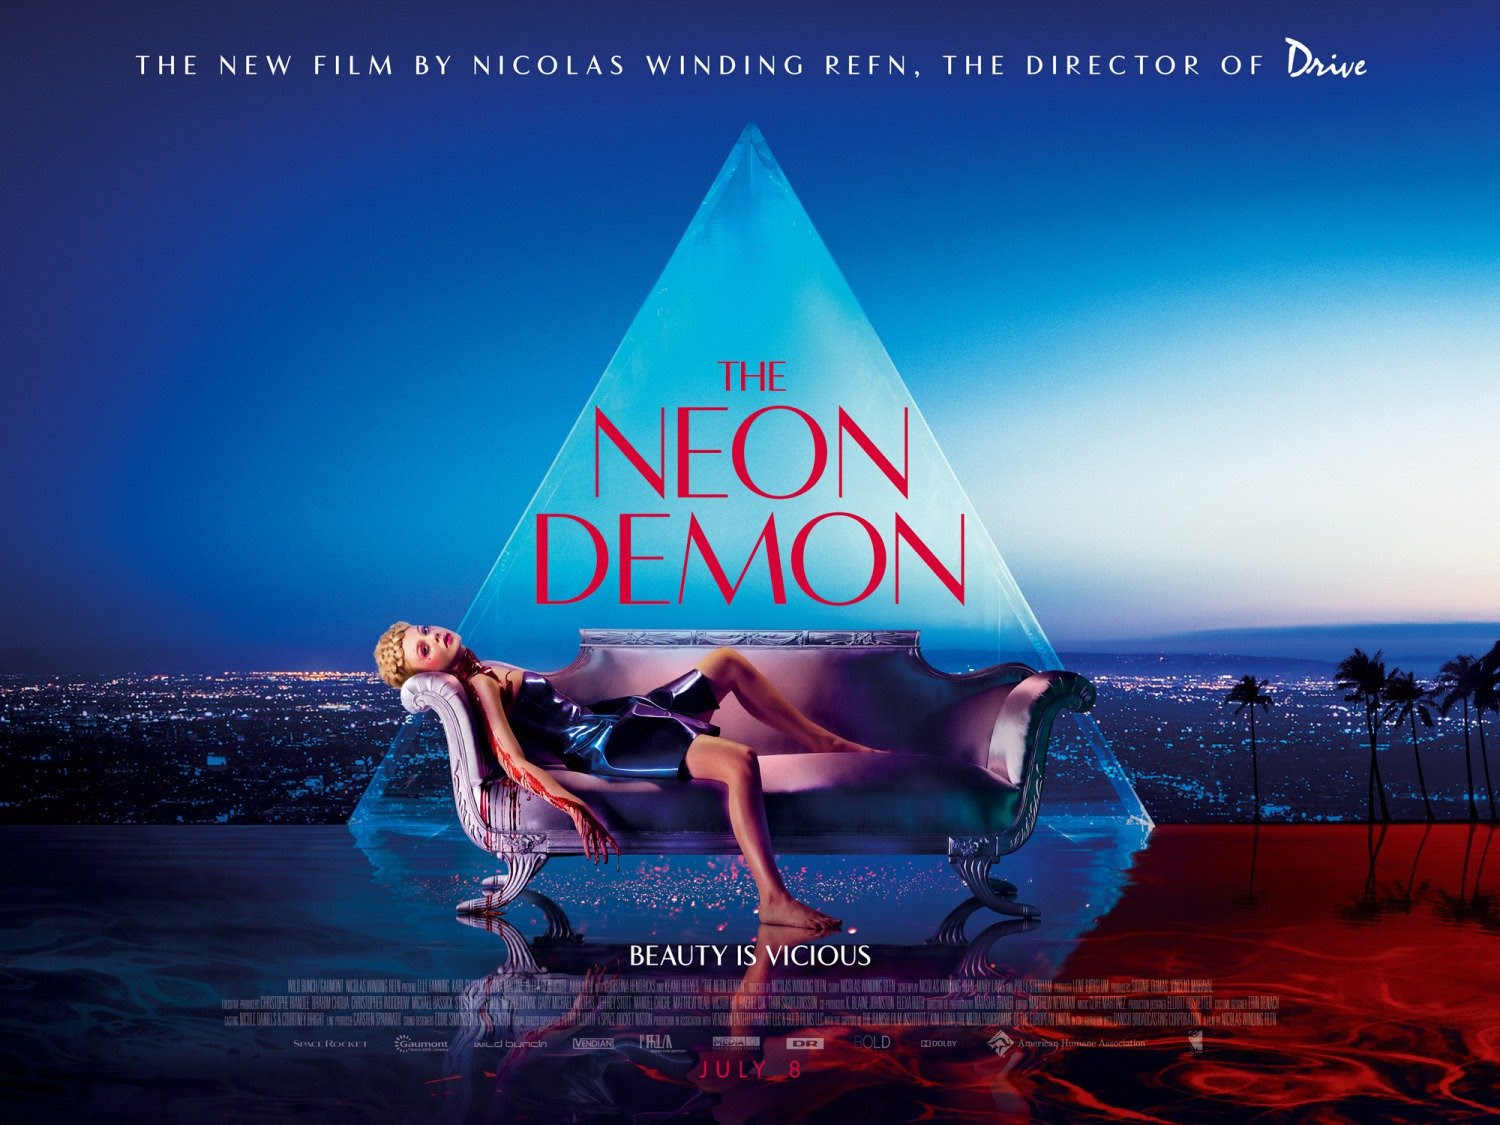 """The Neon Demon is a film about """"an aspiring model in Los Angeles whose beauty and youth place her in significant danger amongst the women she becomes associated with in the industry, who are murderous and dangerous"""". In short, it is about the Satanic industry. In this poster, the model is laying bloody while the elite's pyramid is in the background."""